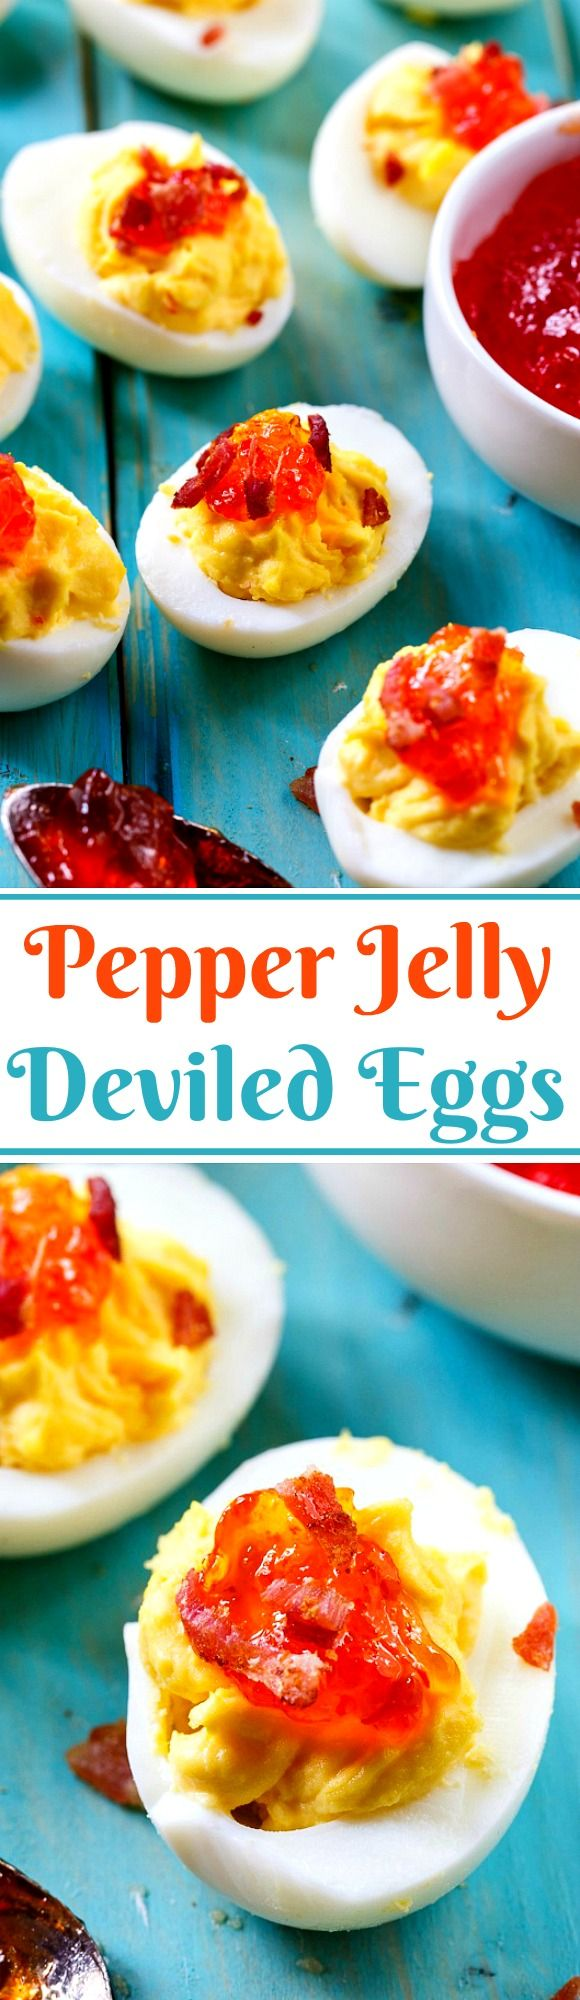 Red Pepper Jelly Deviled Eggs with Bacon. You'll love the sweet and spicy flavor!